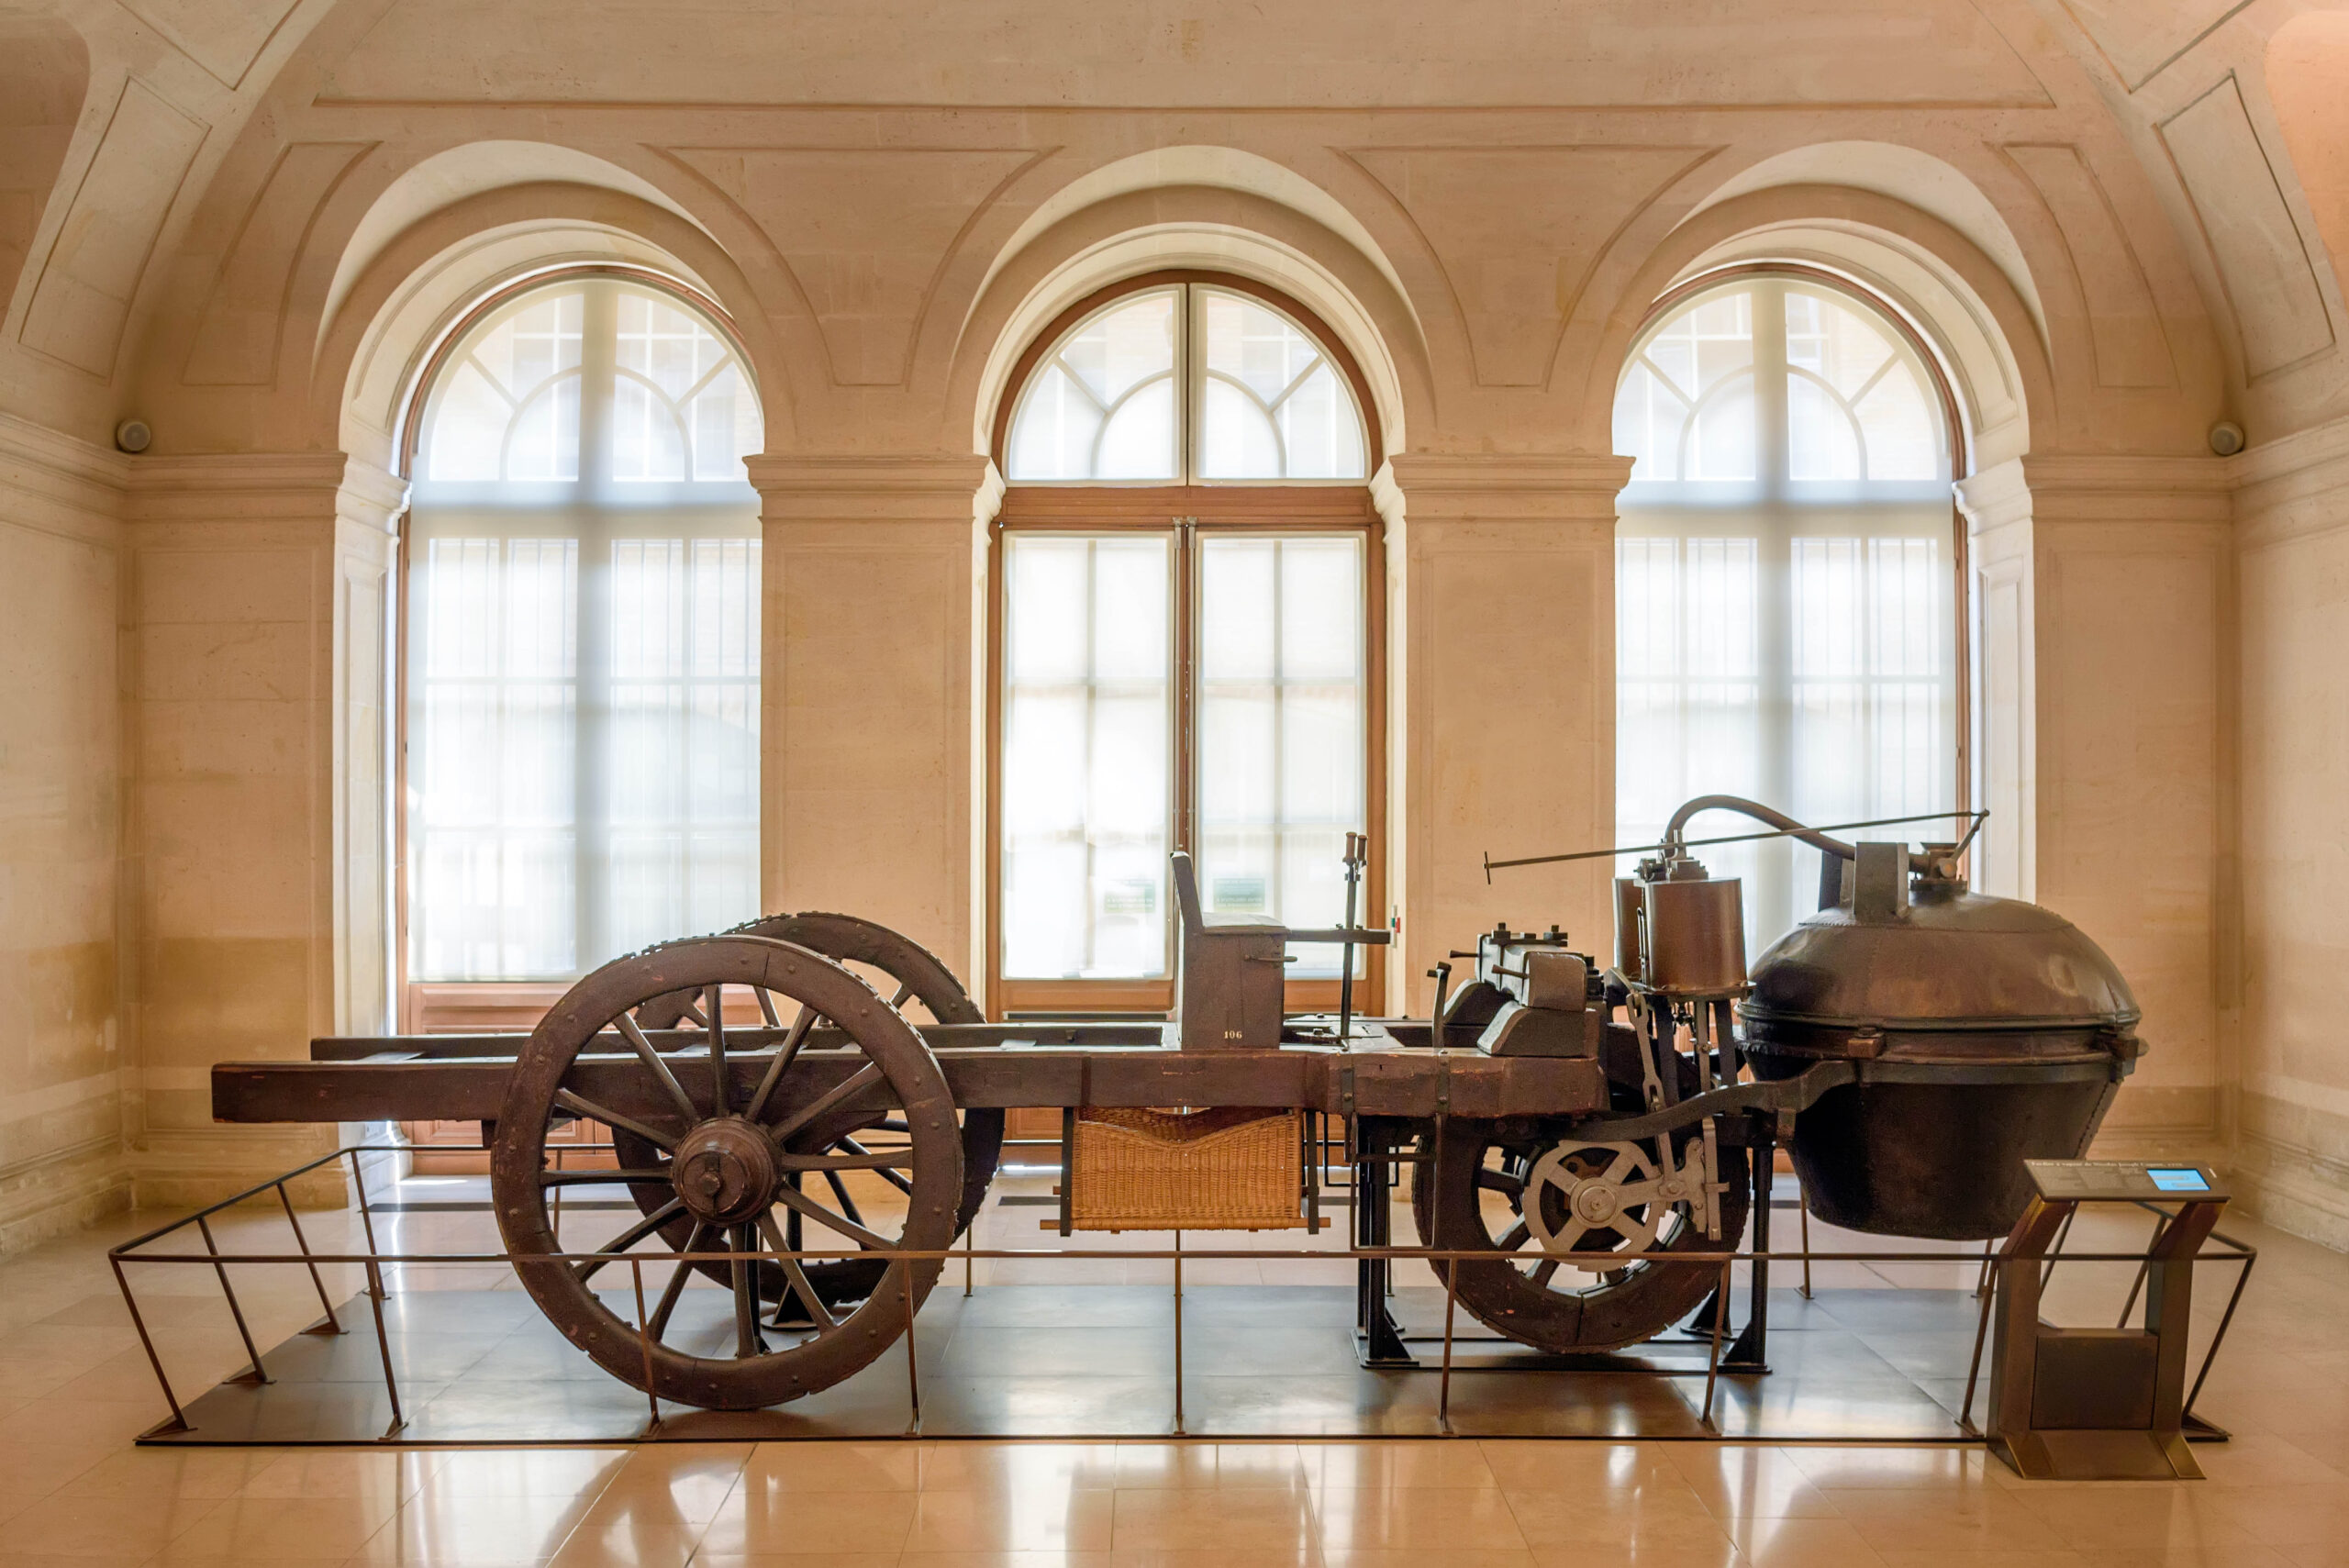 World's first automobile – Fardier à vapeur a steam dray.